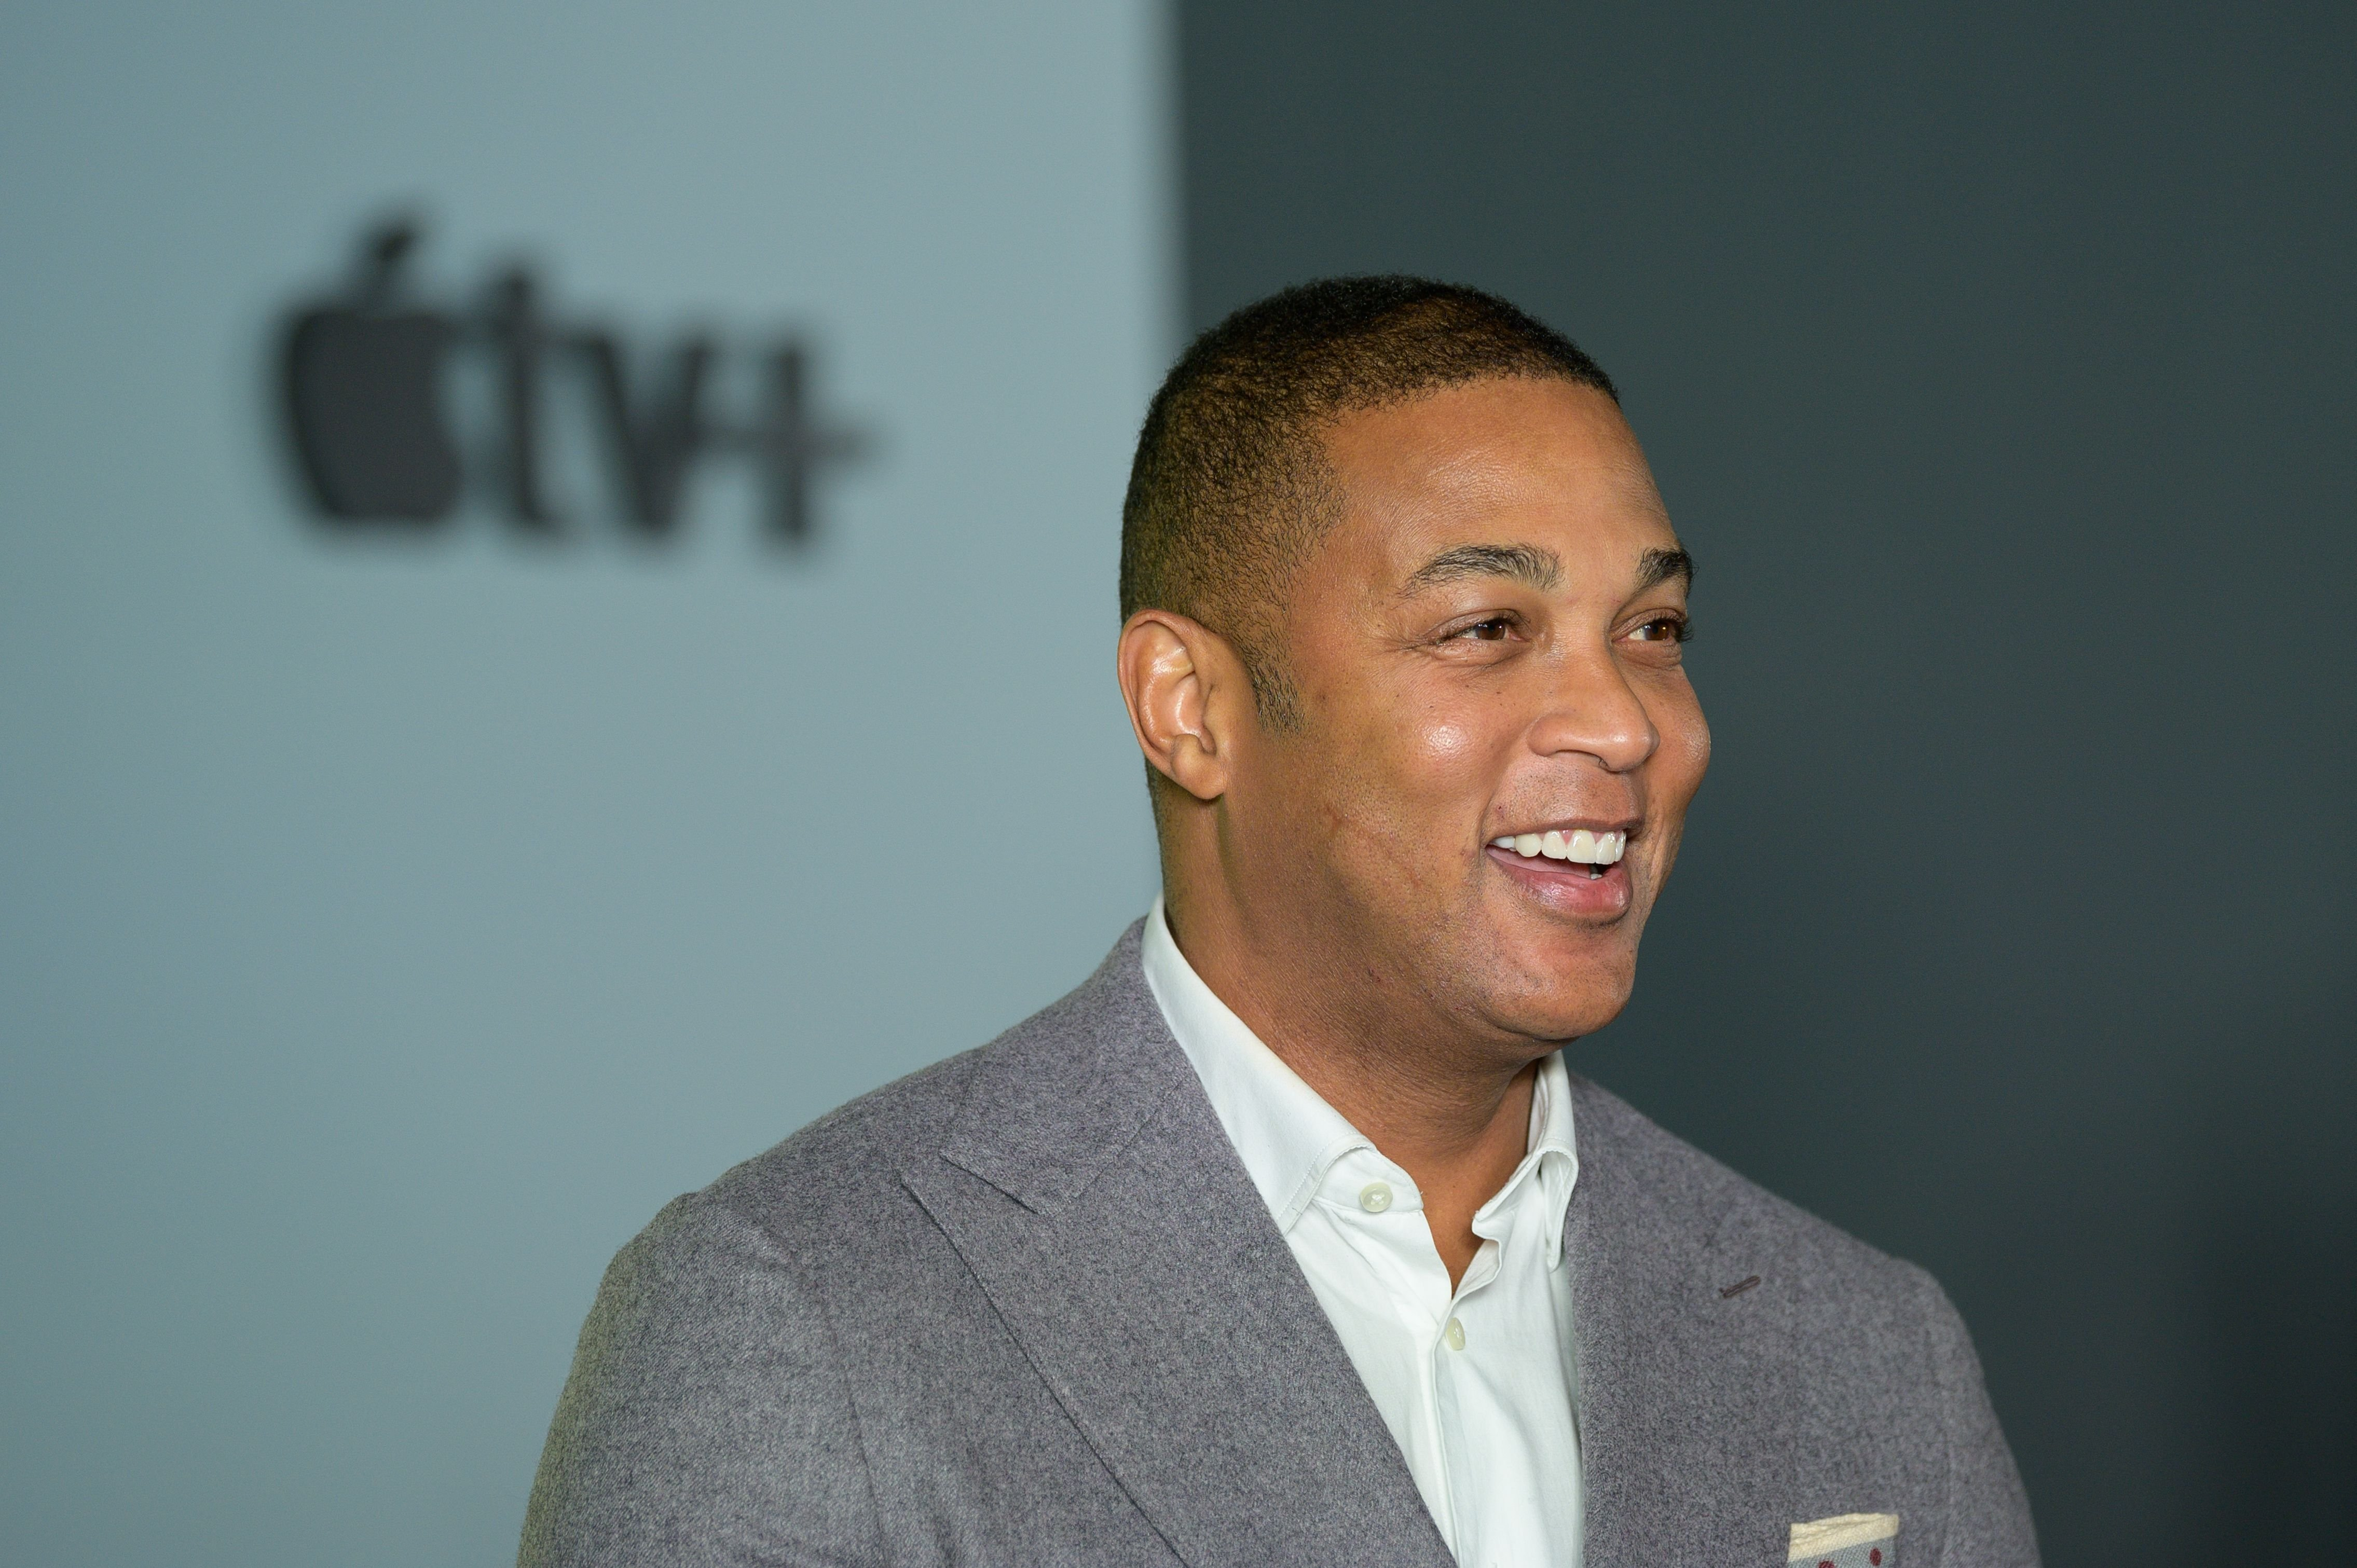 CNN Anchor Don Lemon at a premiere on October 28, 2019 in New York.   Photo: Getty Images